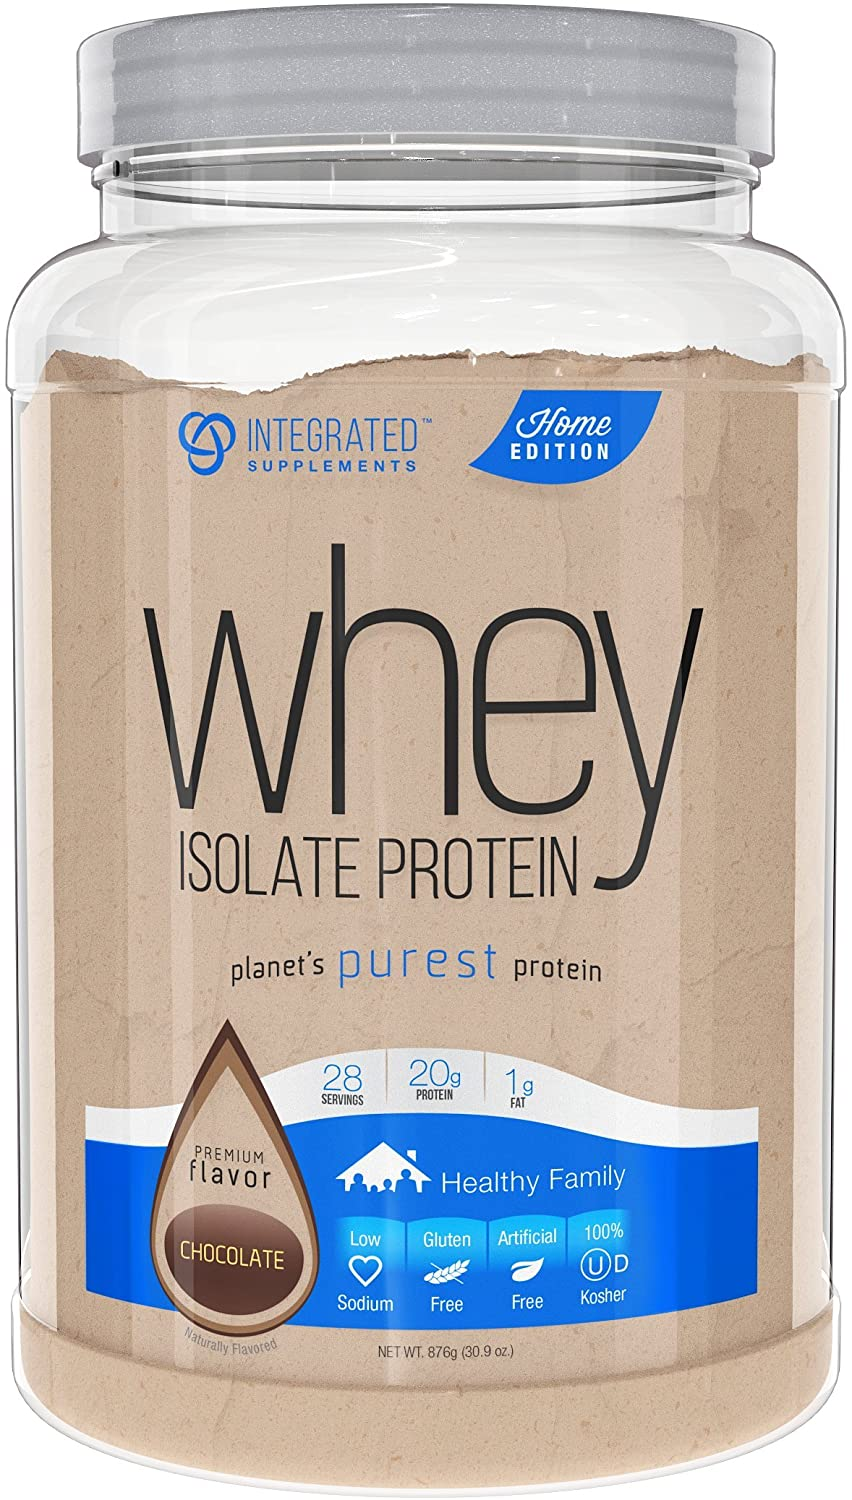 Integrated Supplements CFM Long-awaited Whey Protein Max 65% OFF Diet Supplement Isolate